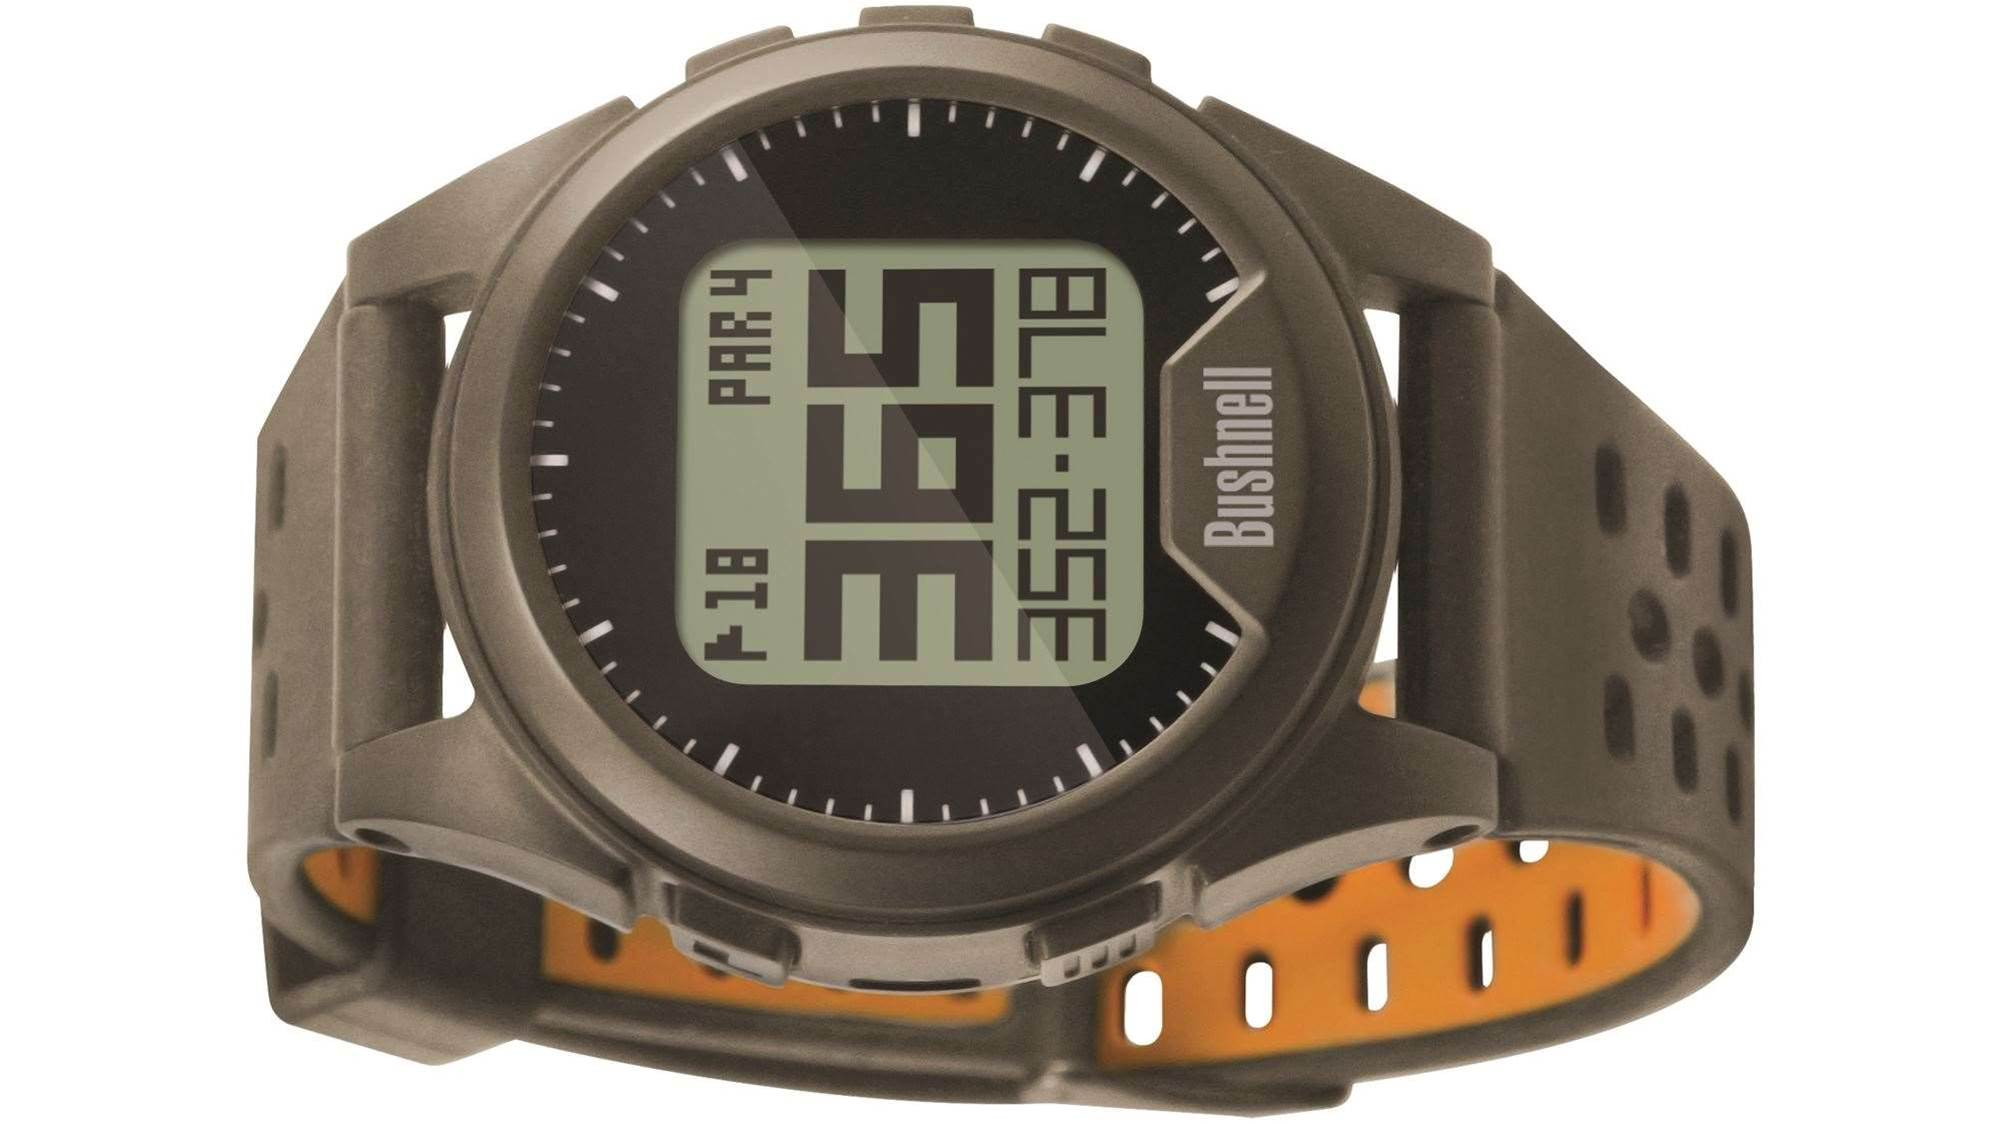 TESTED: Bushnell Neo iON GPS rangefinder watch